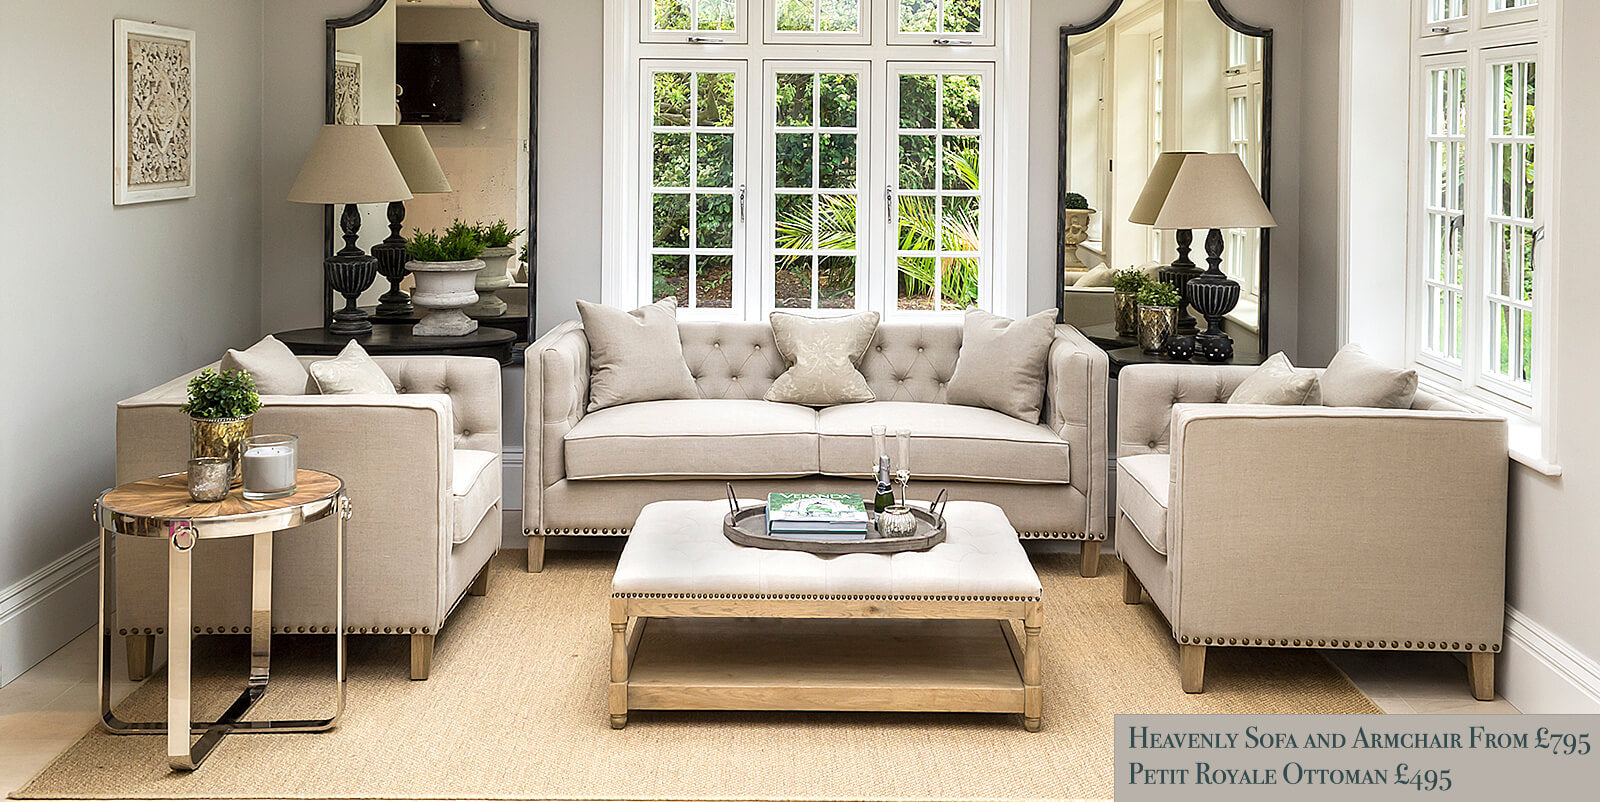 Luxury button back sofas